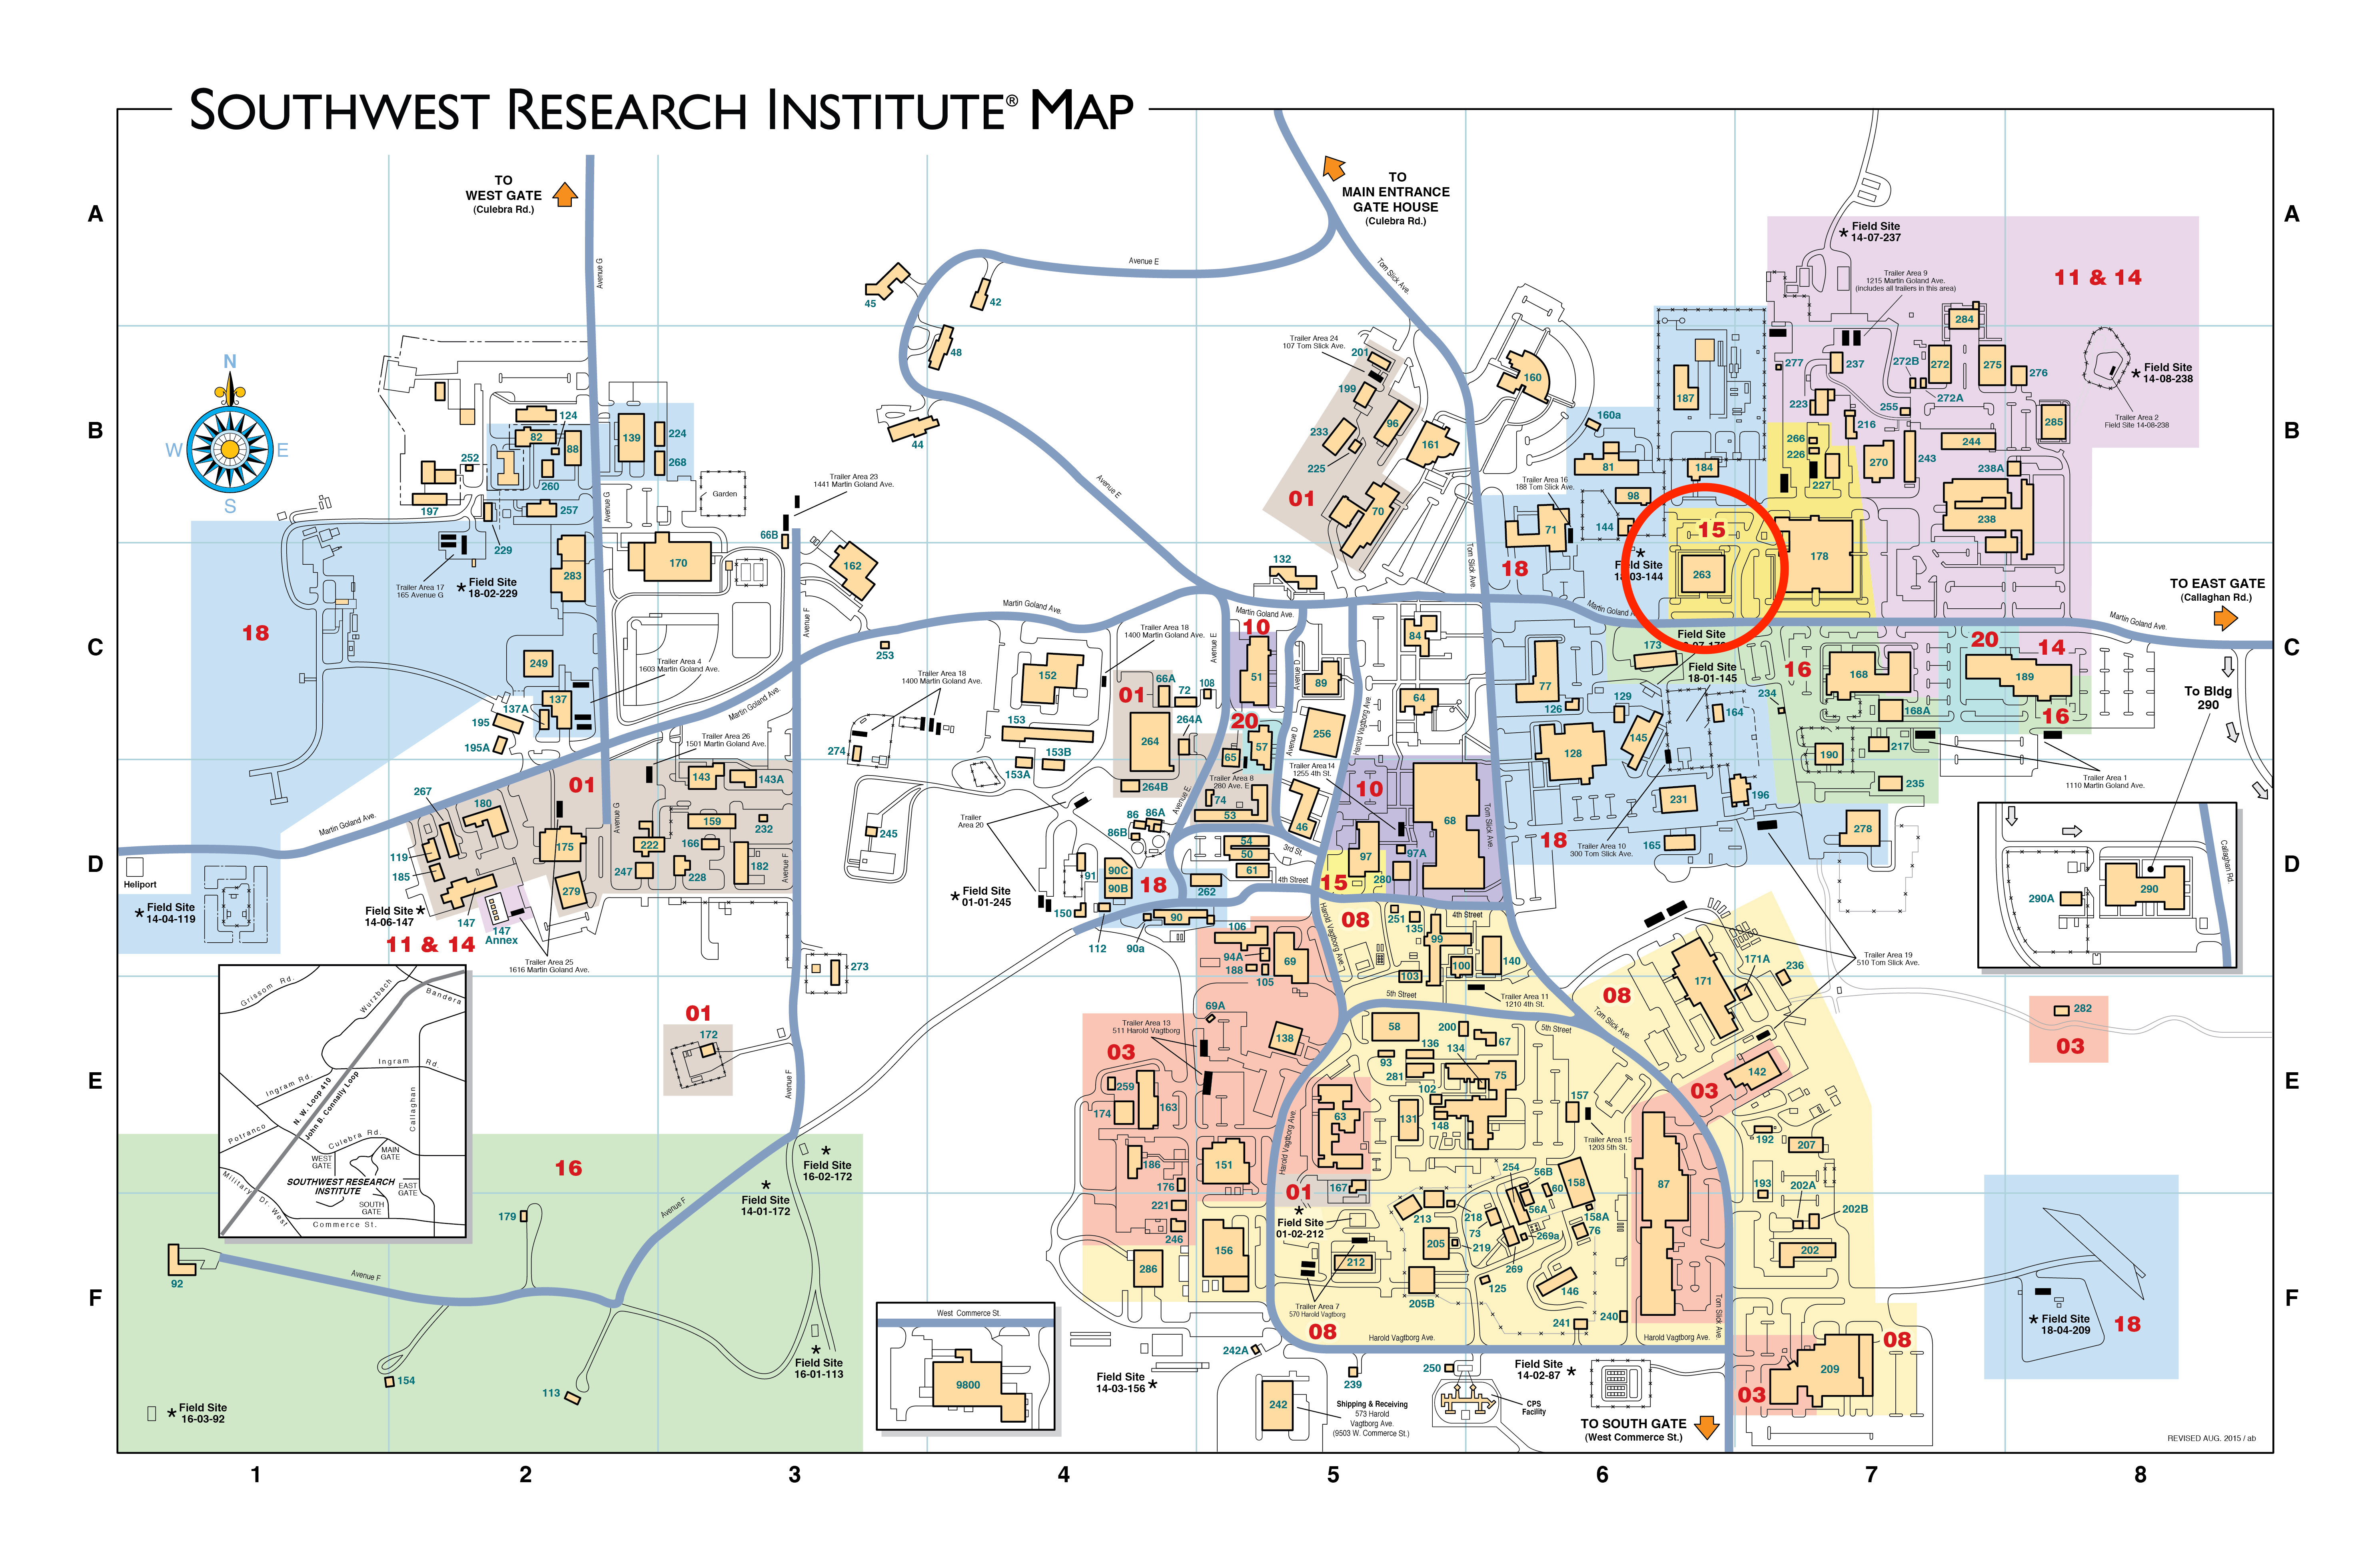 Southwest Research Institute Campus Map Www Topsimages Com